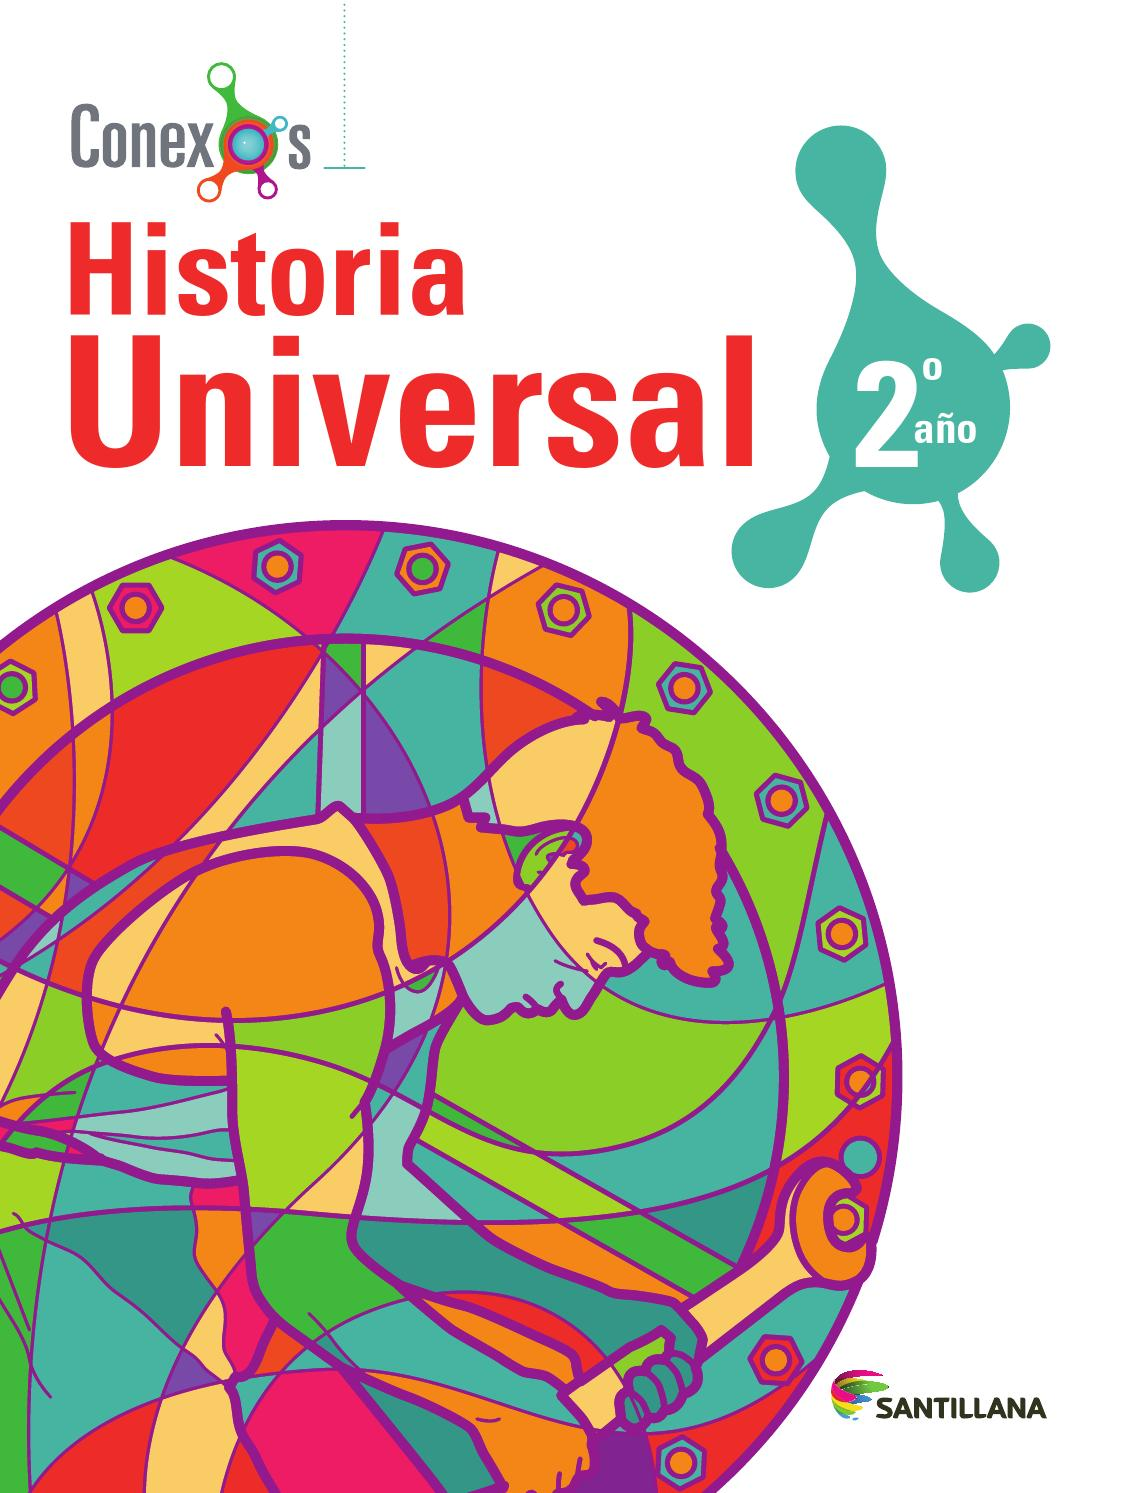 Historia Universal 2do ao by SANTILLANA Venezuela  issuu